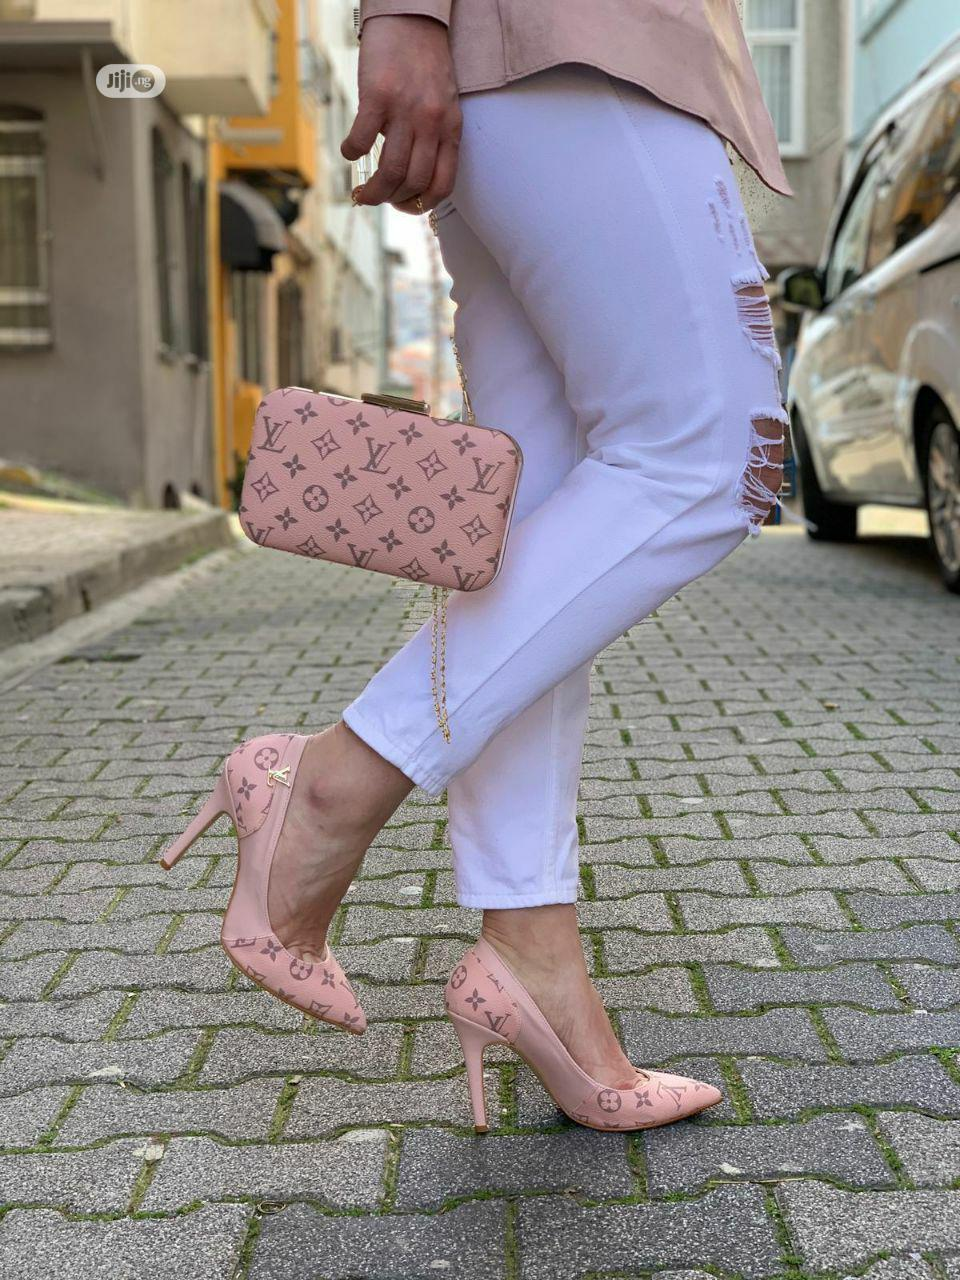 Louis Vuitton Designer's Set Of Shoe And Bag | Bags for sale in Ajah, Lagos State, Nigeria